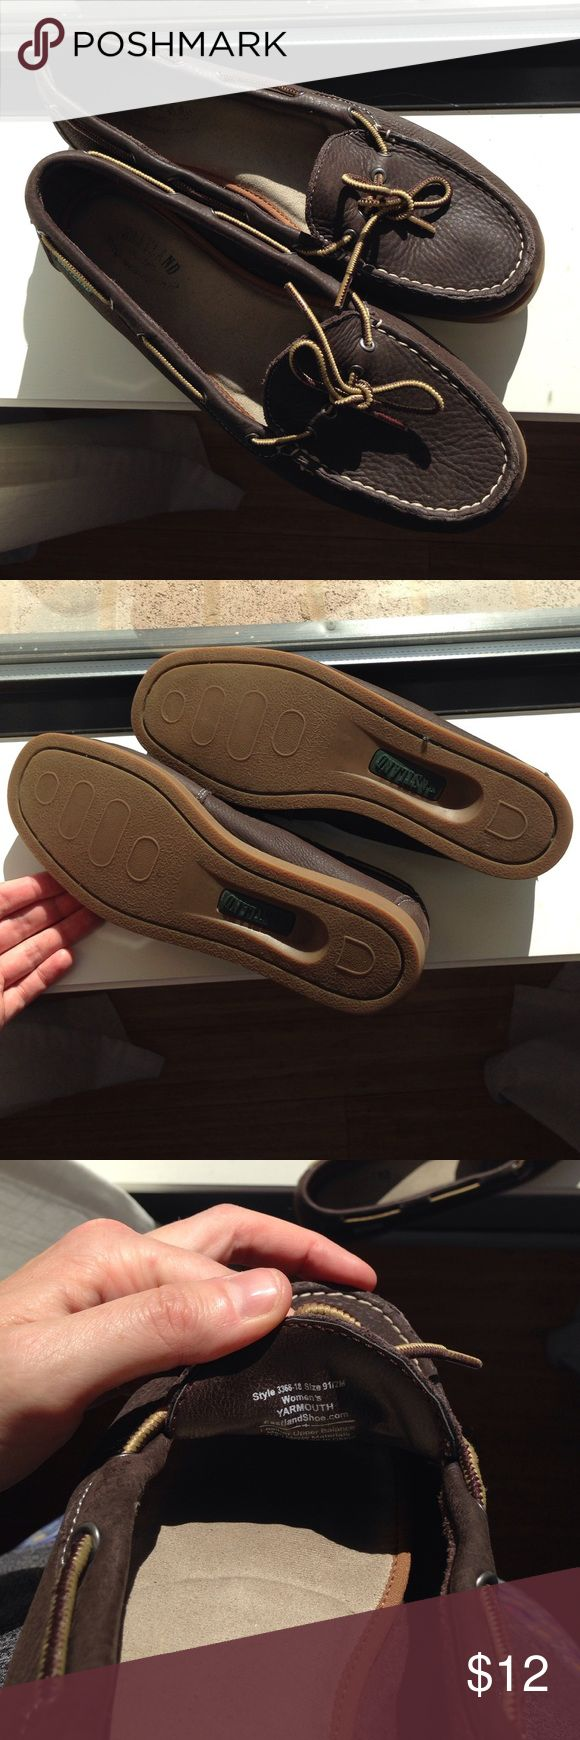 Eastland Loafers Brown Leather Loafers Size 95 Good Used